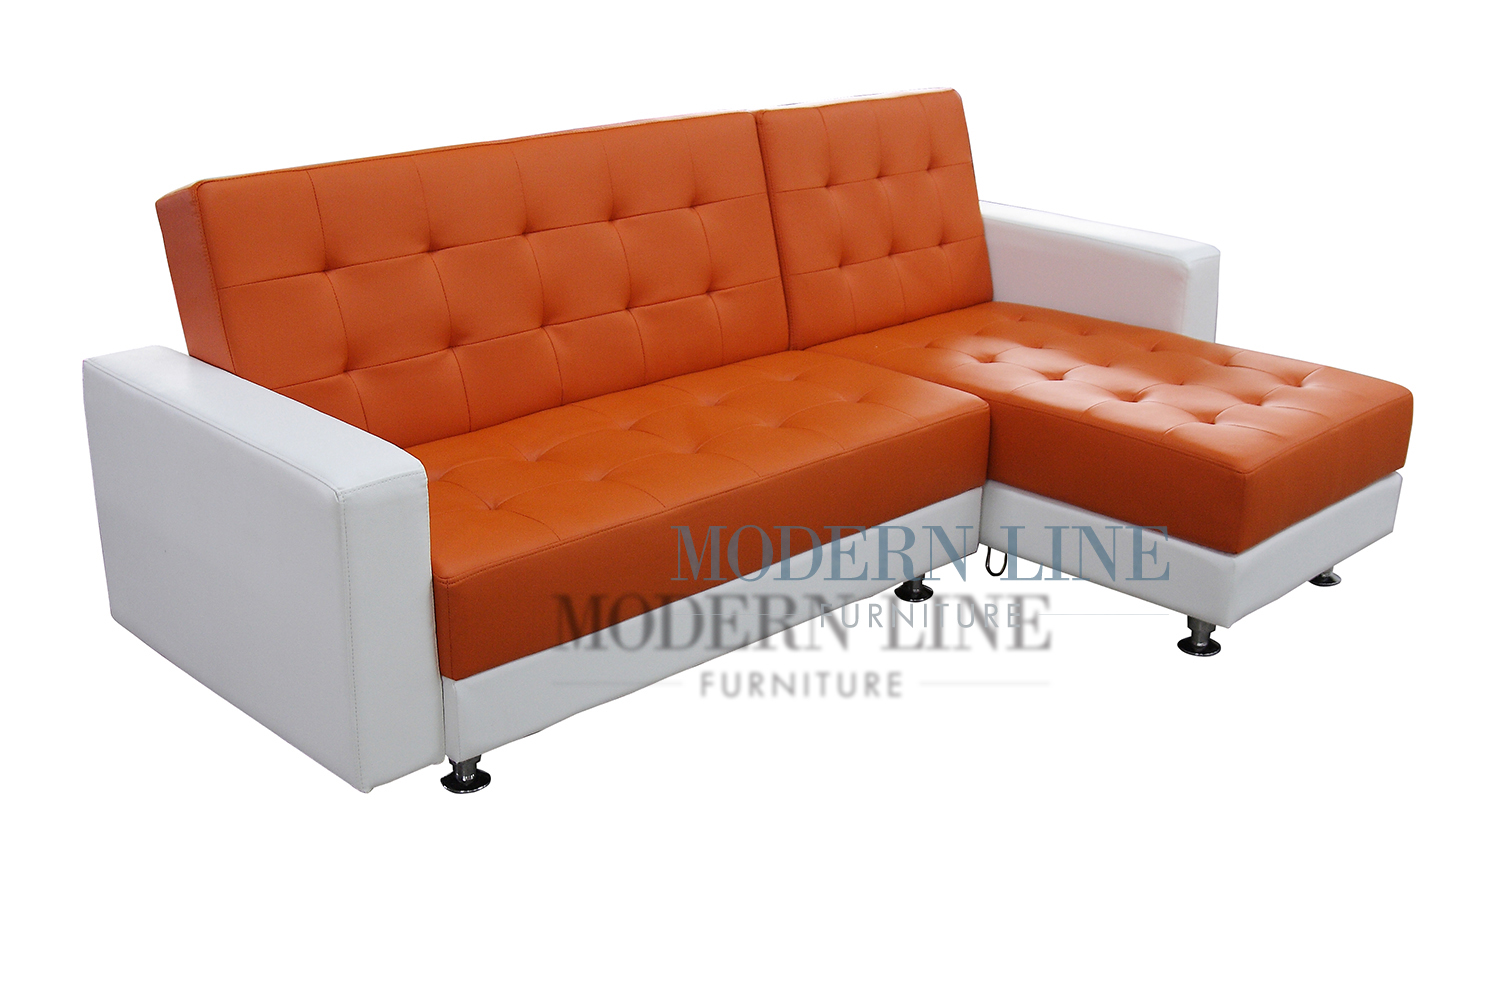 Sectional Sleeper Sofa | King Size Futon | Queen Sleeper Sectional Sofa